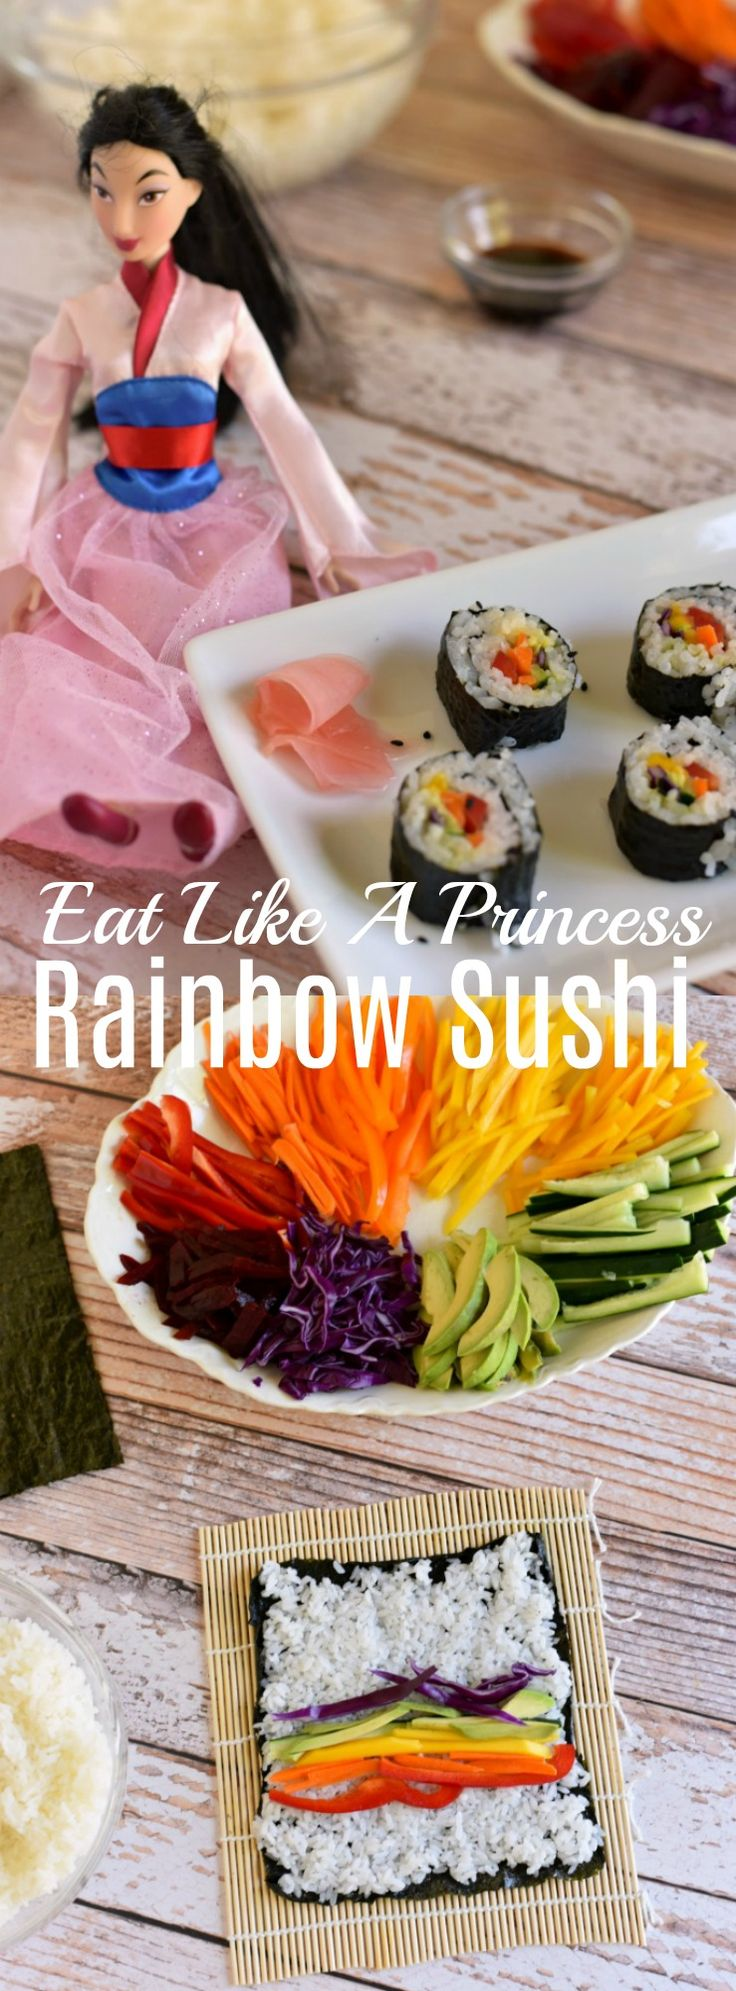 These easy veggie rainbow sushi rolls are perfect for kids! Eat Like A Princess - Mulan Inspired Recipe  via @GingeredWhisk